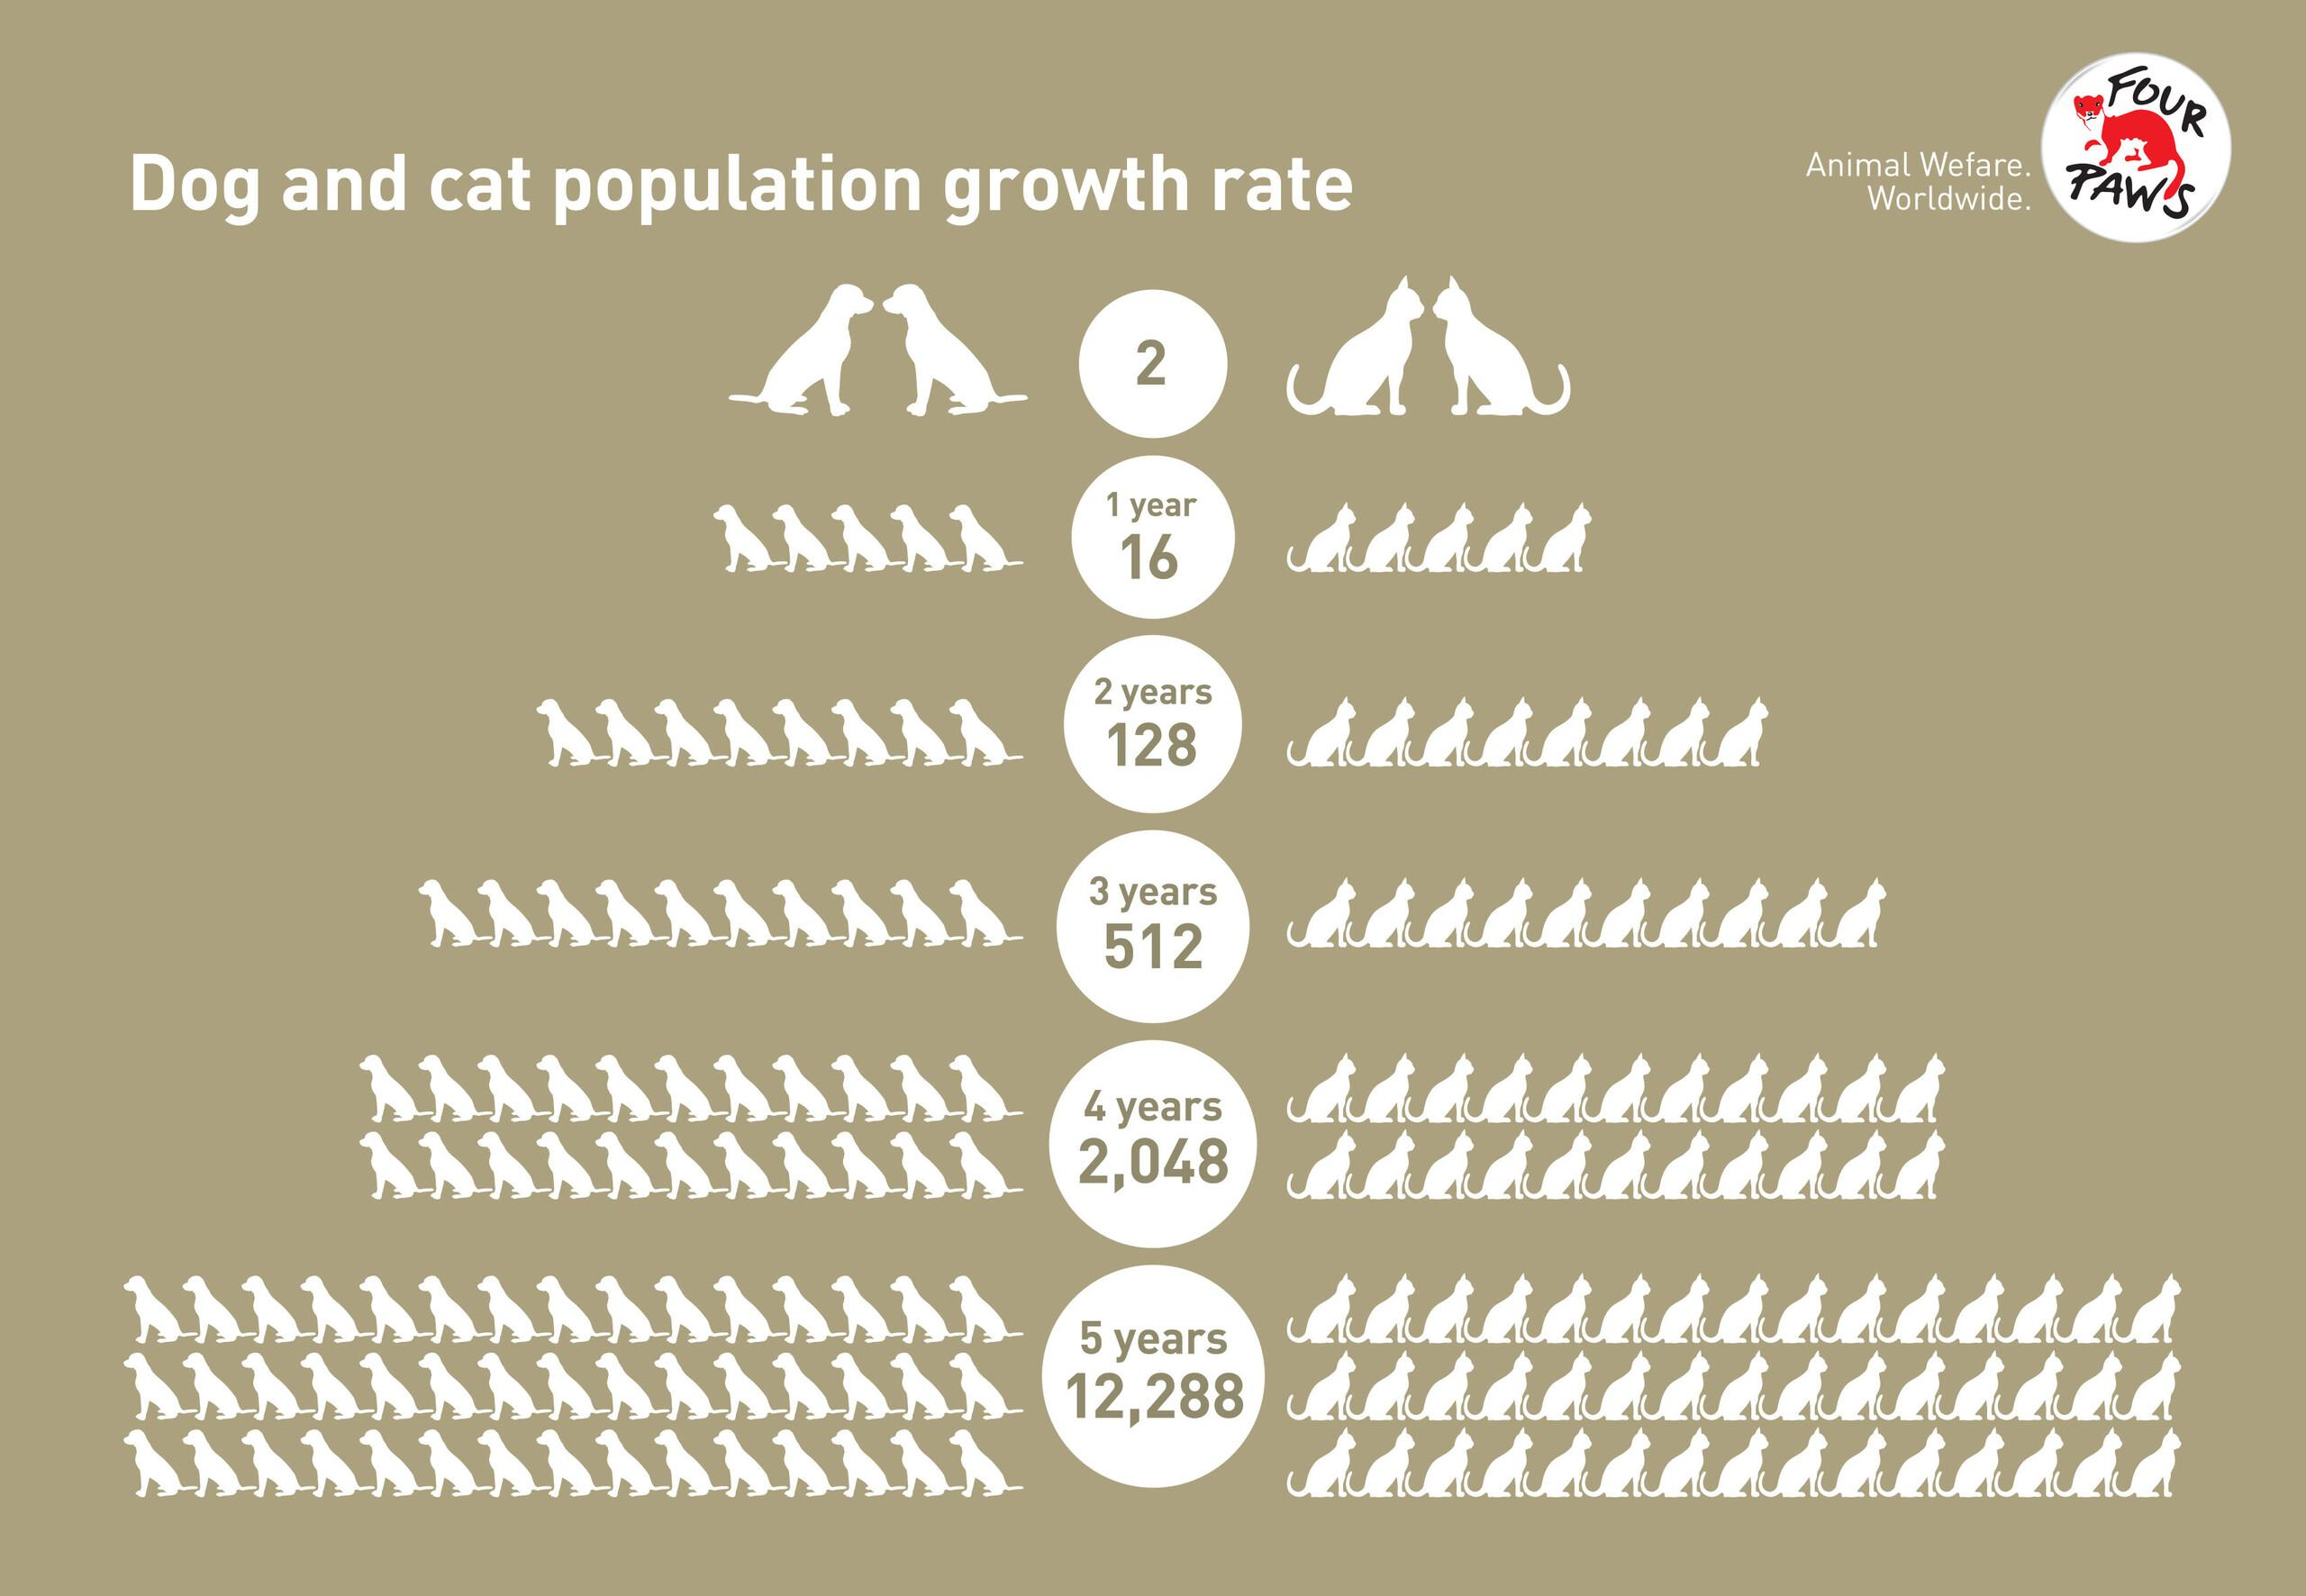 Dog and cat population growth rate